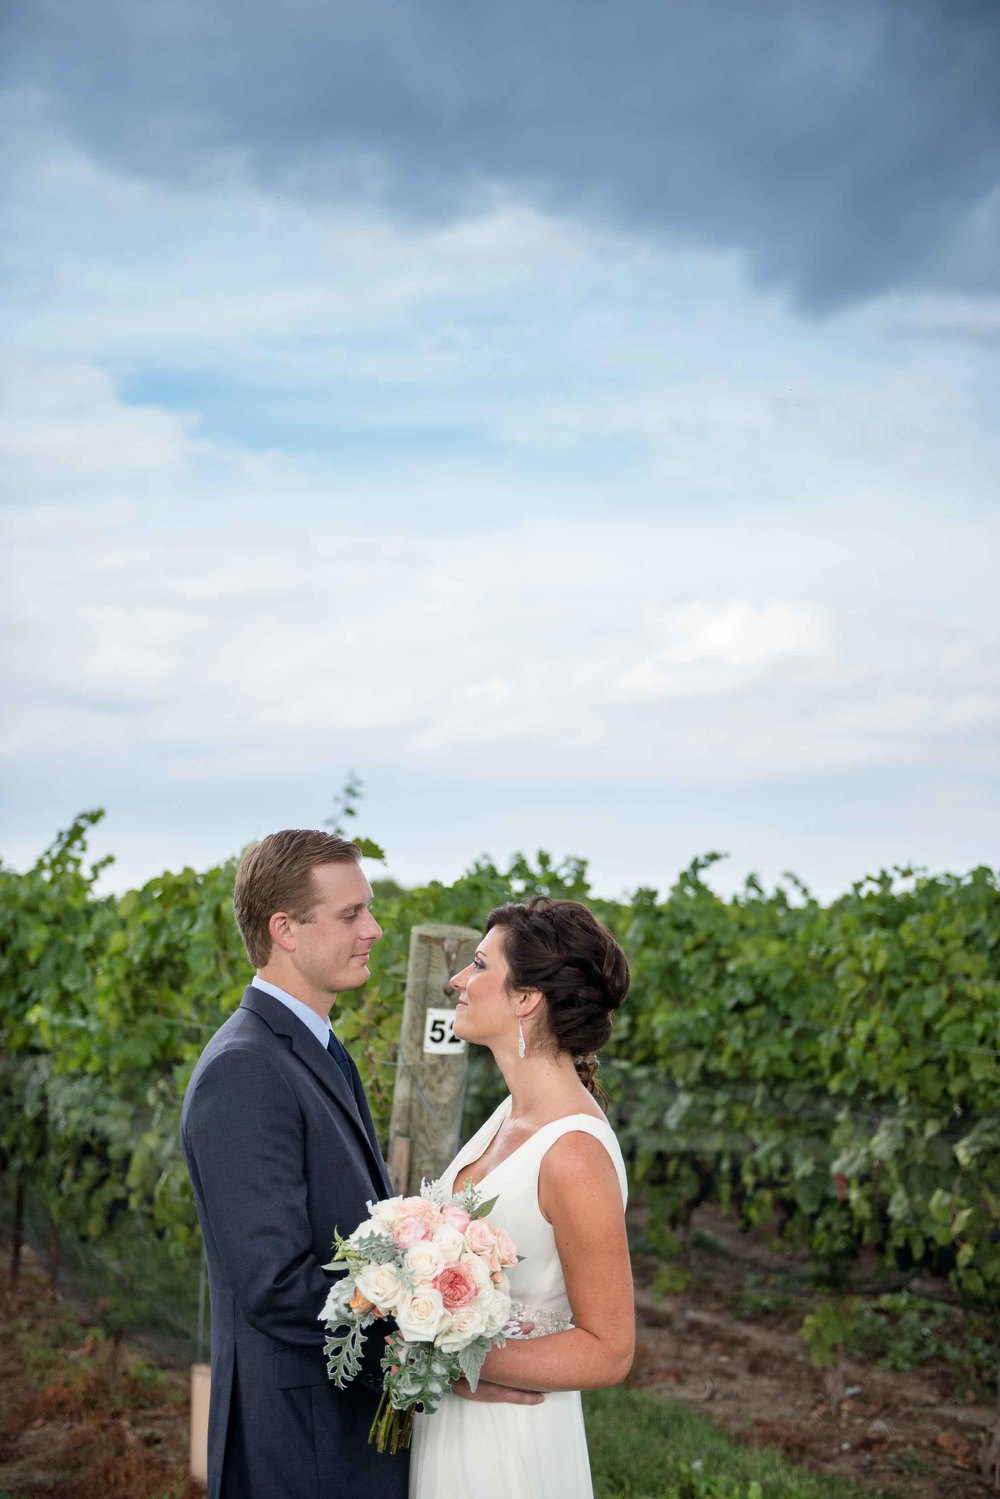 Sher and Brian Wedding by Sugar Photo Studios (11 of 322).jpg